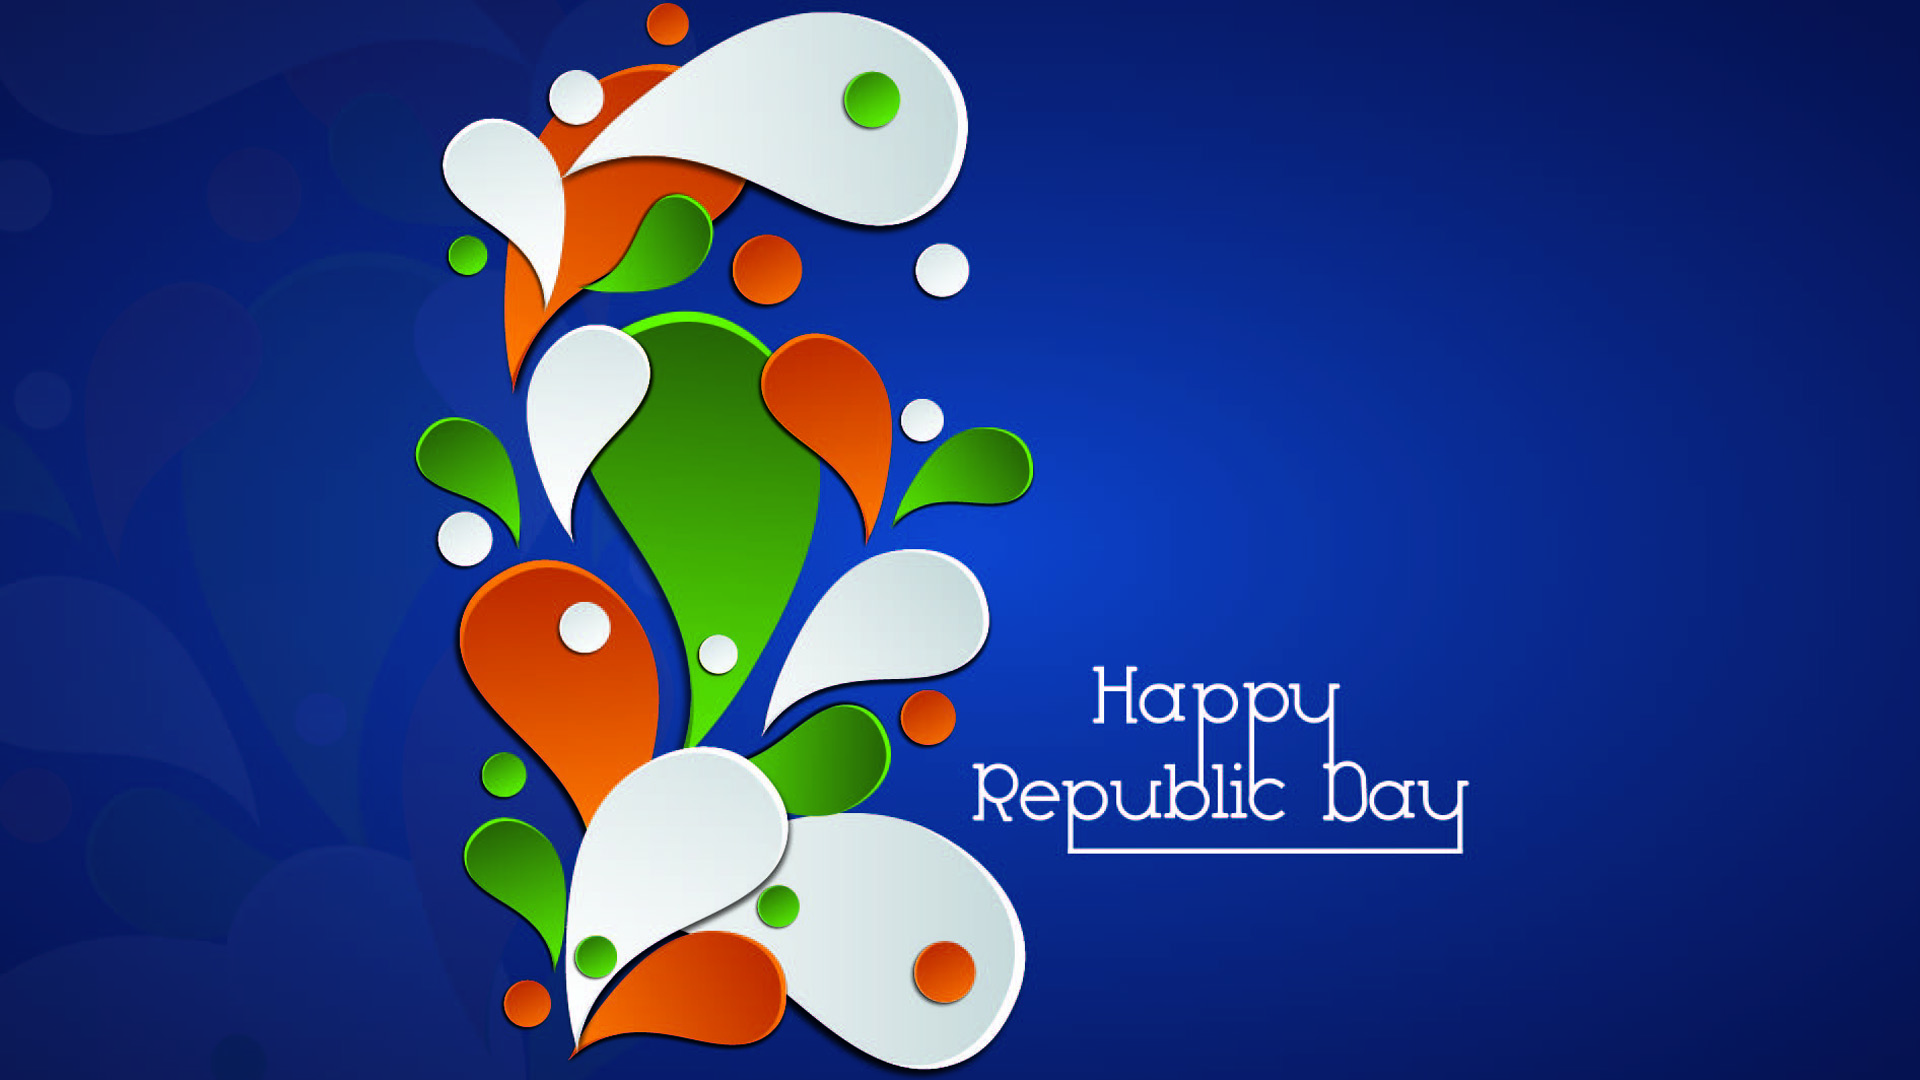 26 Jan India Republic Day HD Images, Wallpapers - Free Download